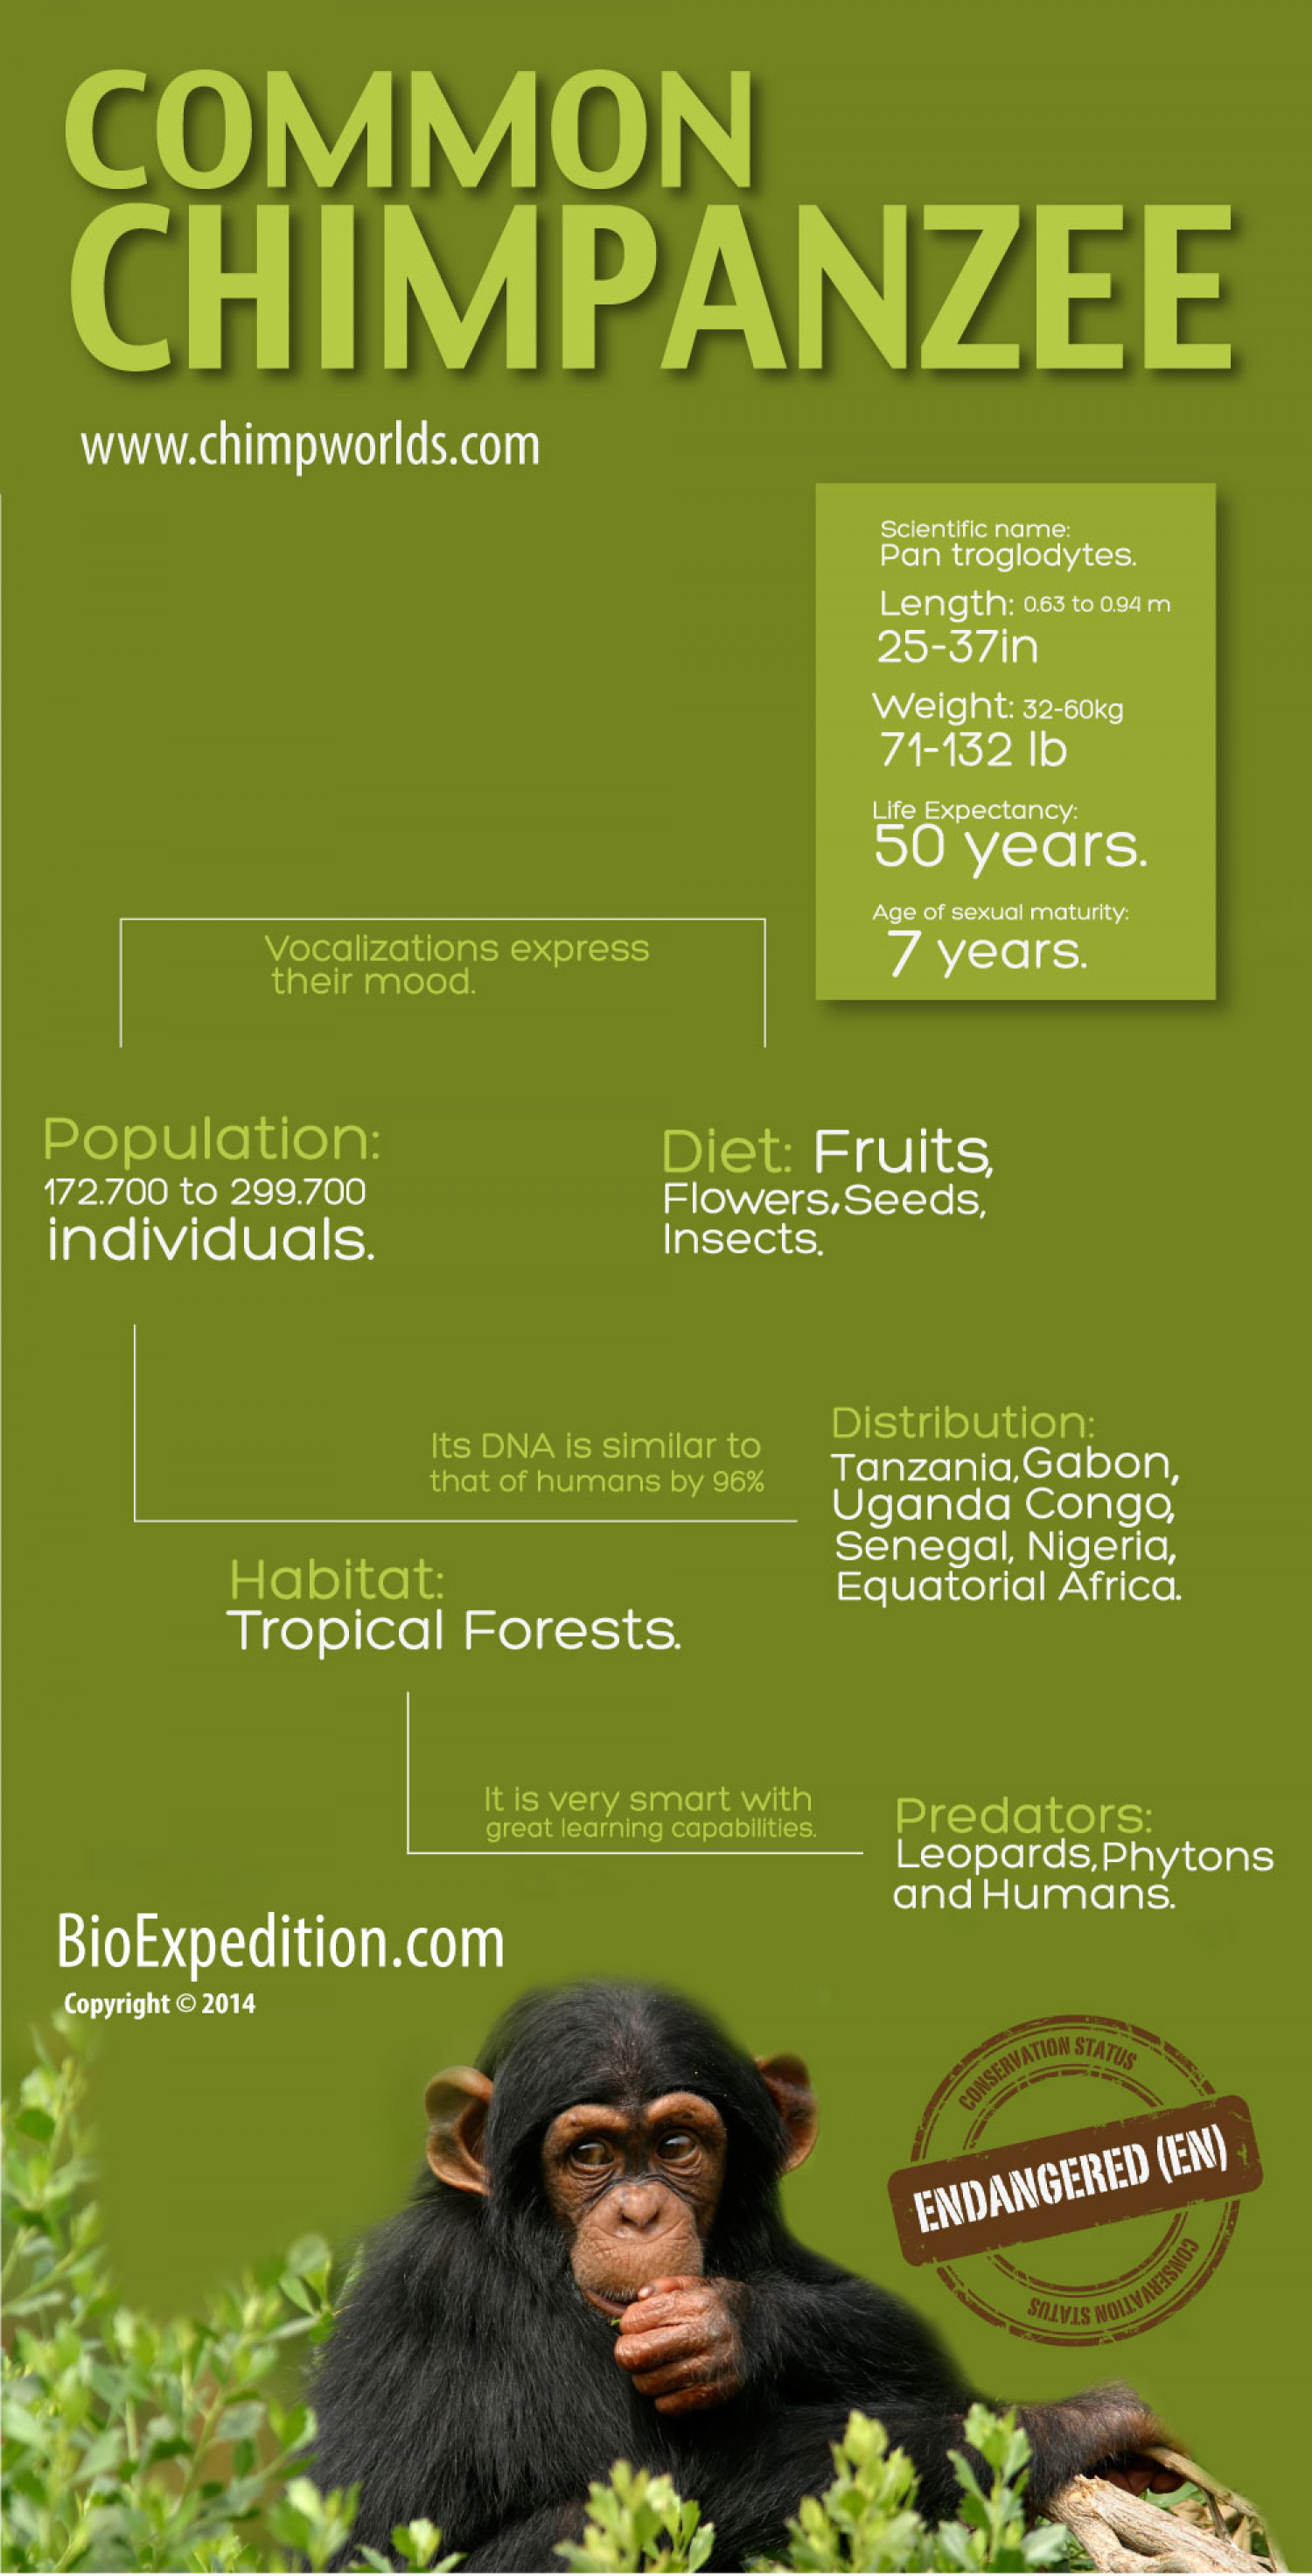 Common Chimpanzee Facts Infographic